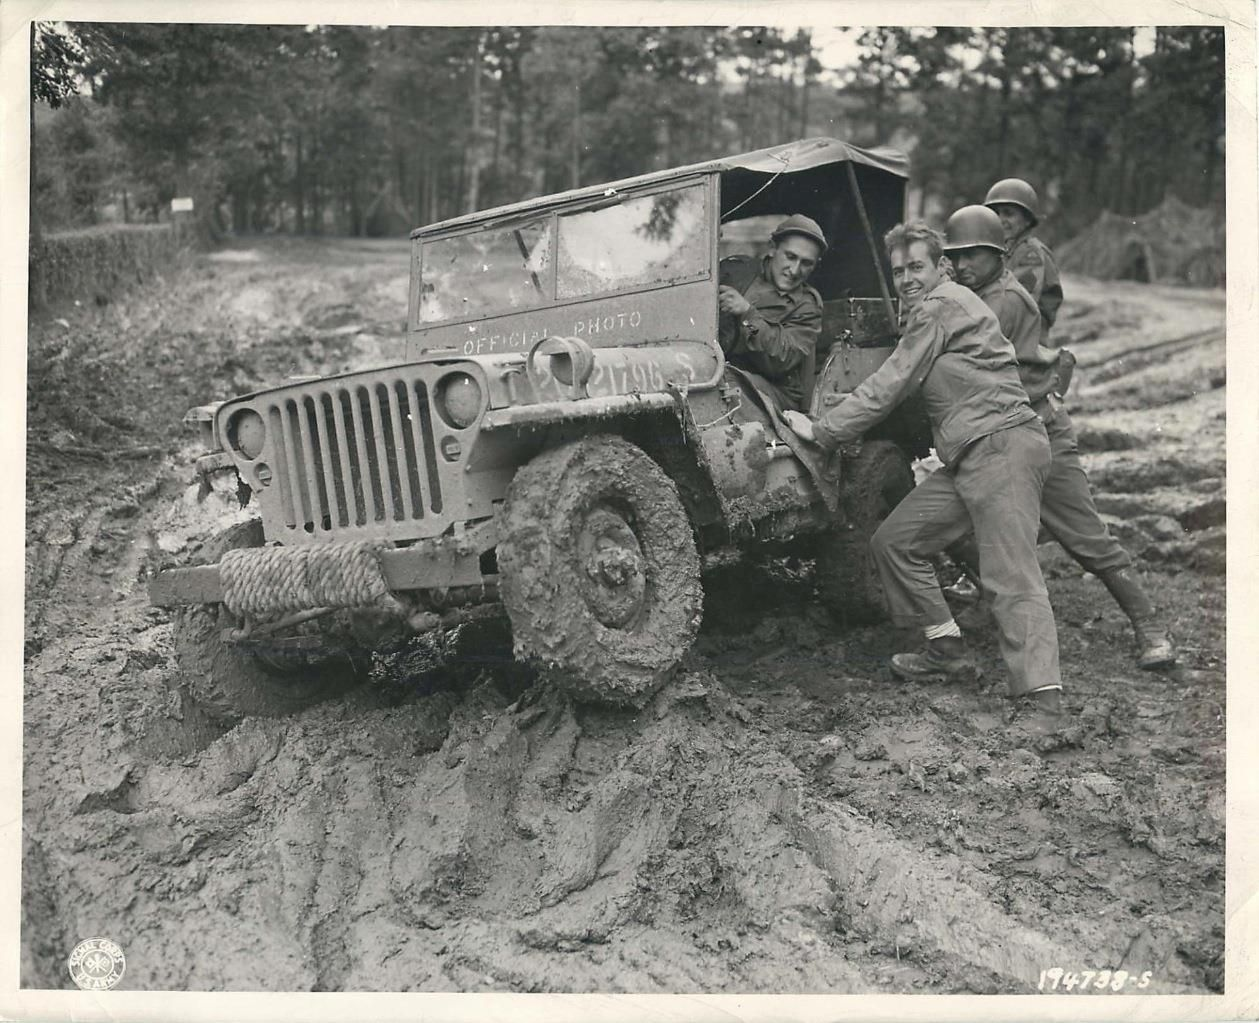 medium resolution of u s soldiers work to free jeep mired in the mud of germany october 1944